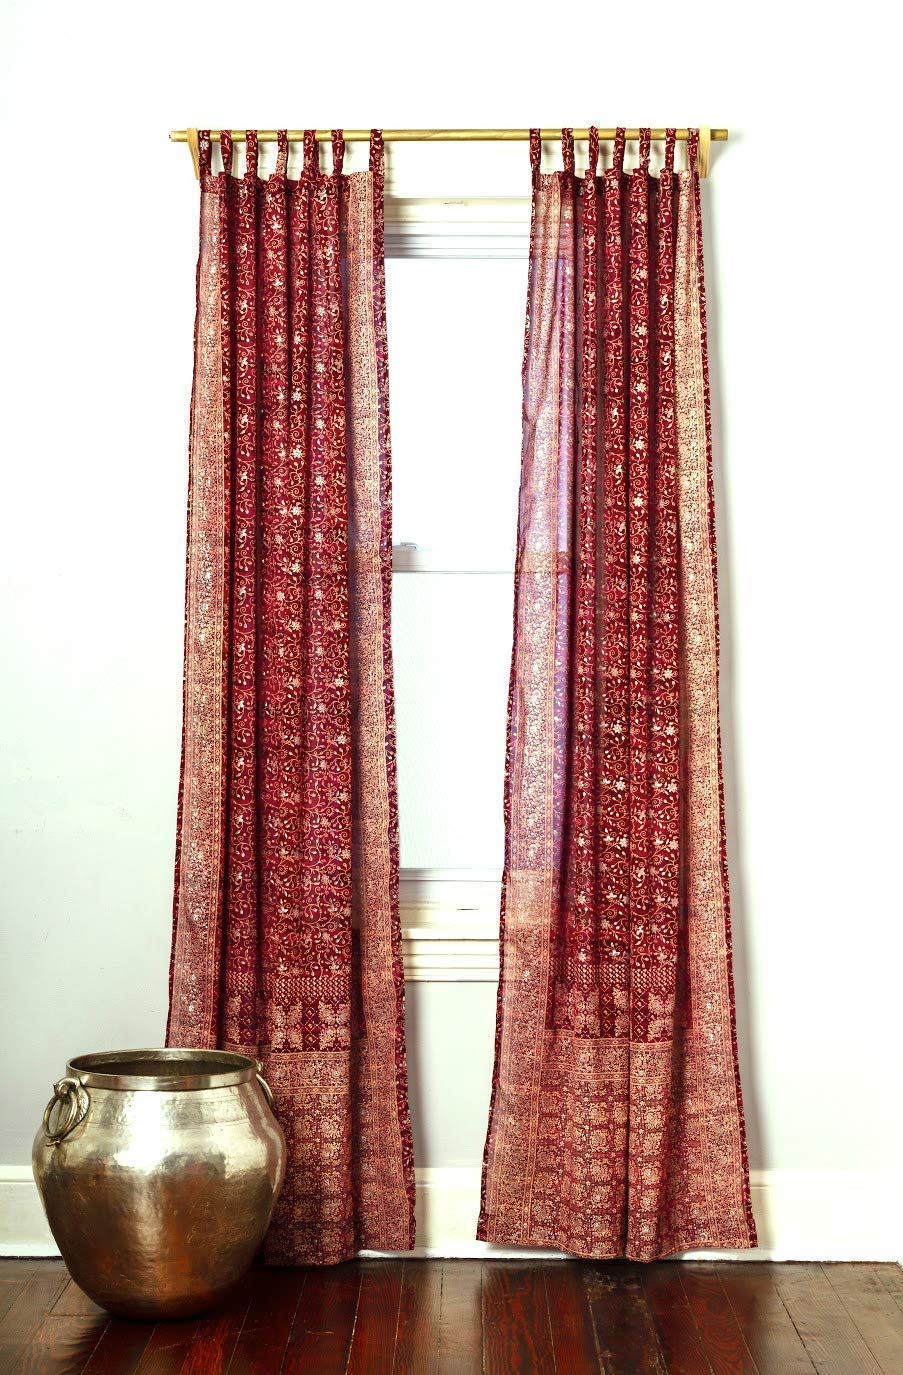 Maroon Burgundy Red Curtain Boho Window Treatment Light Sari 108 96 84 inch for Bedroom Living room Dining room Yoga Studio Canopy Bed Tent Hippie Gypsy Bohemian Chic Bright Color HomeDecor W Gift bag